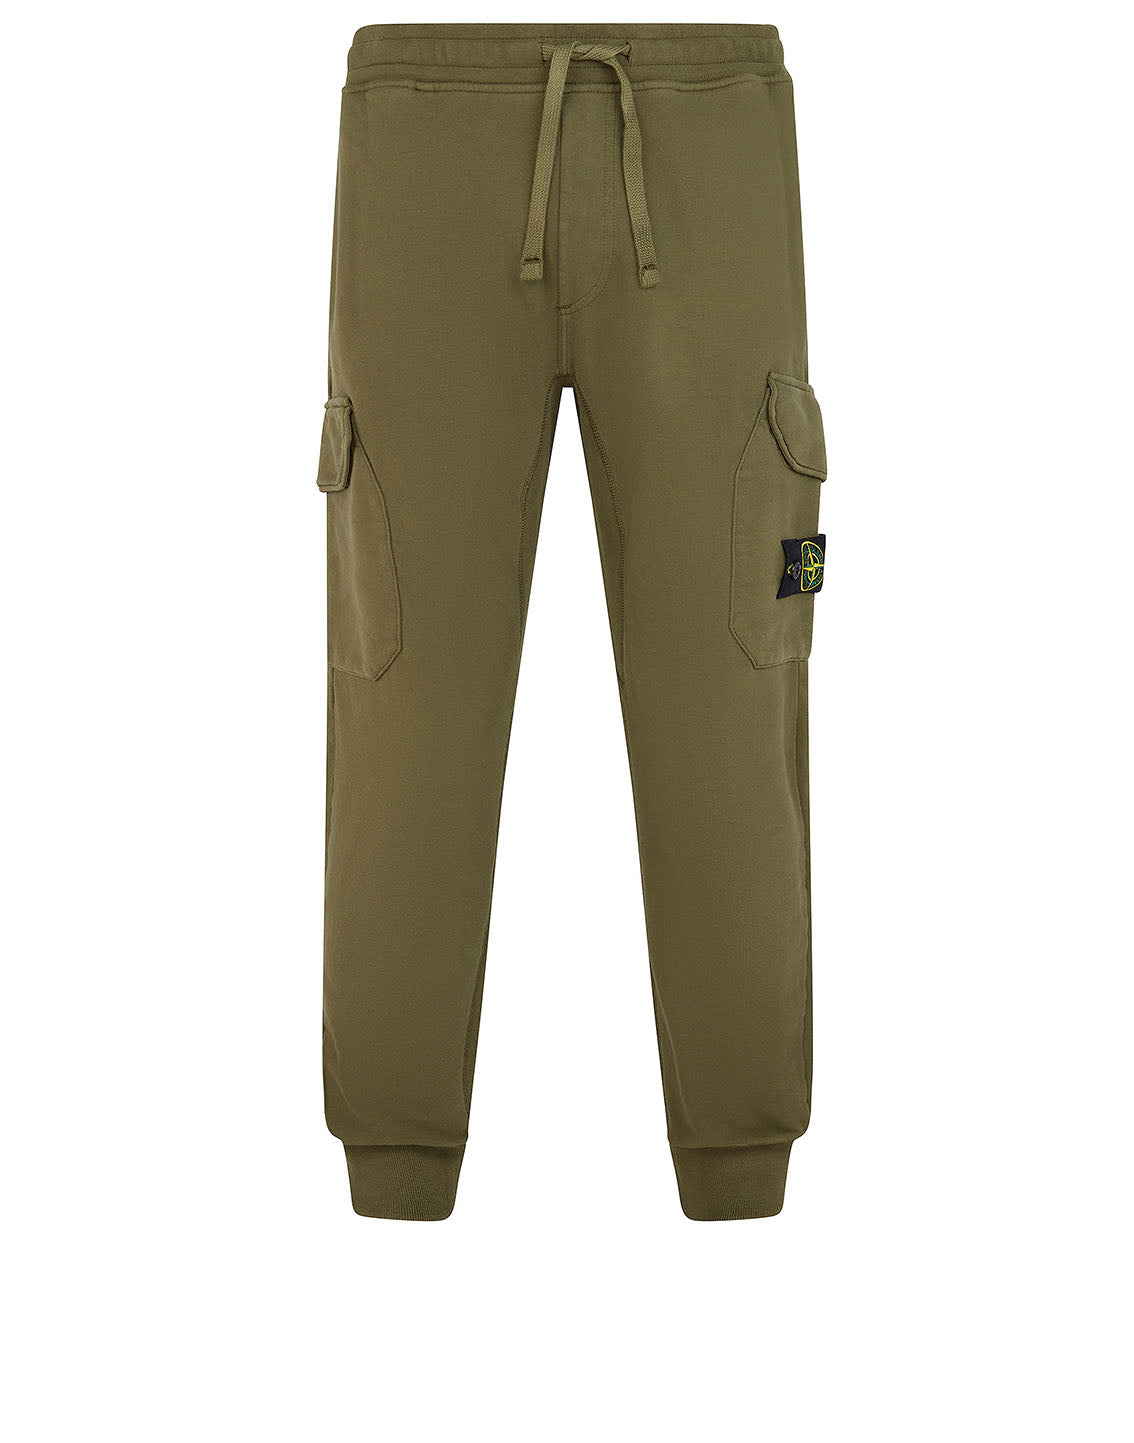 61120 Cargo Sweatpants in Olive